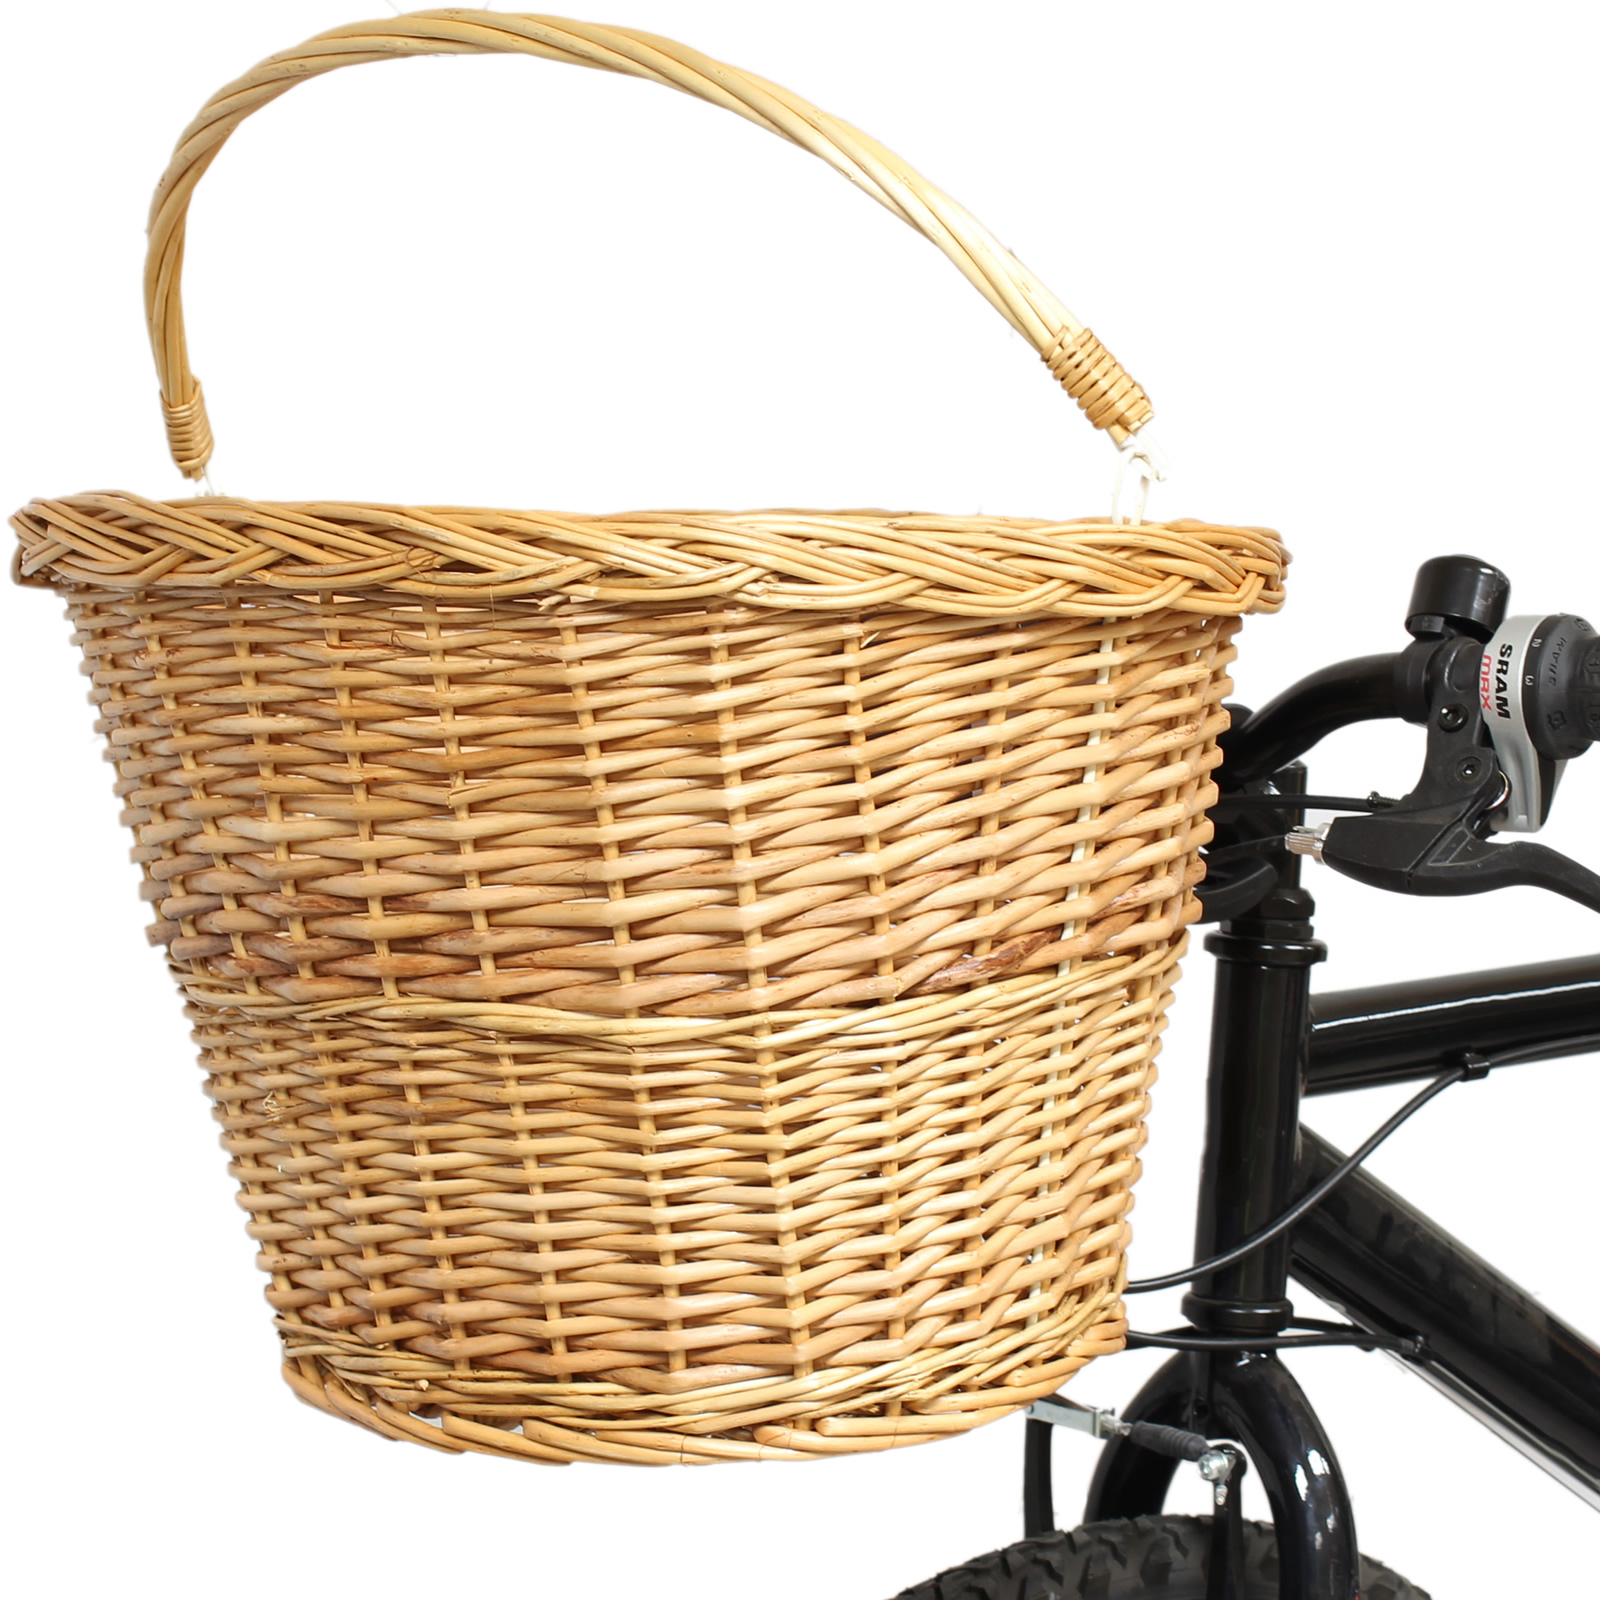 PEDALPRO QUICK RELEASE BICYCLE WICKER SHOPPING BASKET CARRY HANDLE BIKE/CYCLE Enlarged Preview